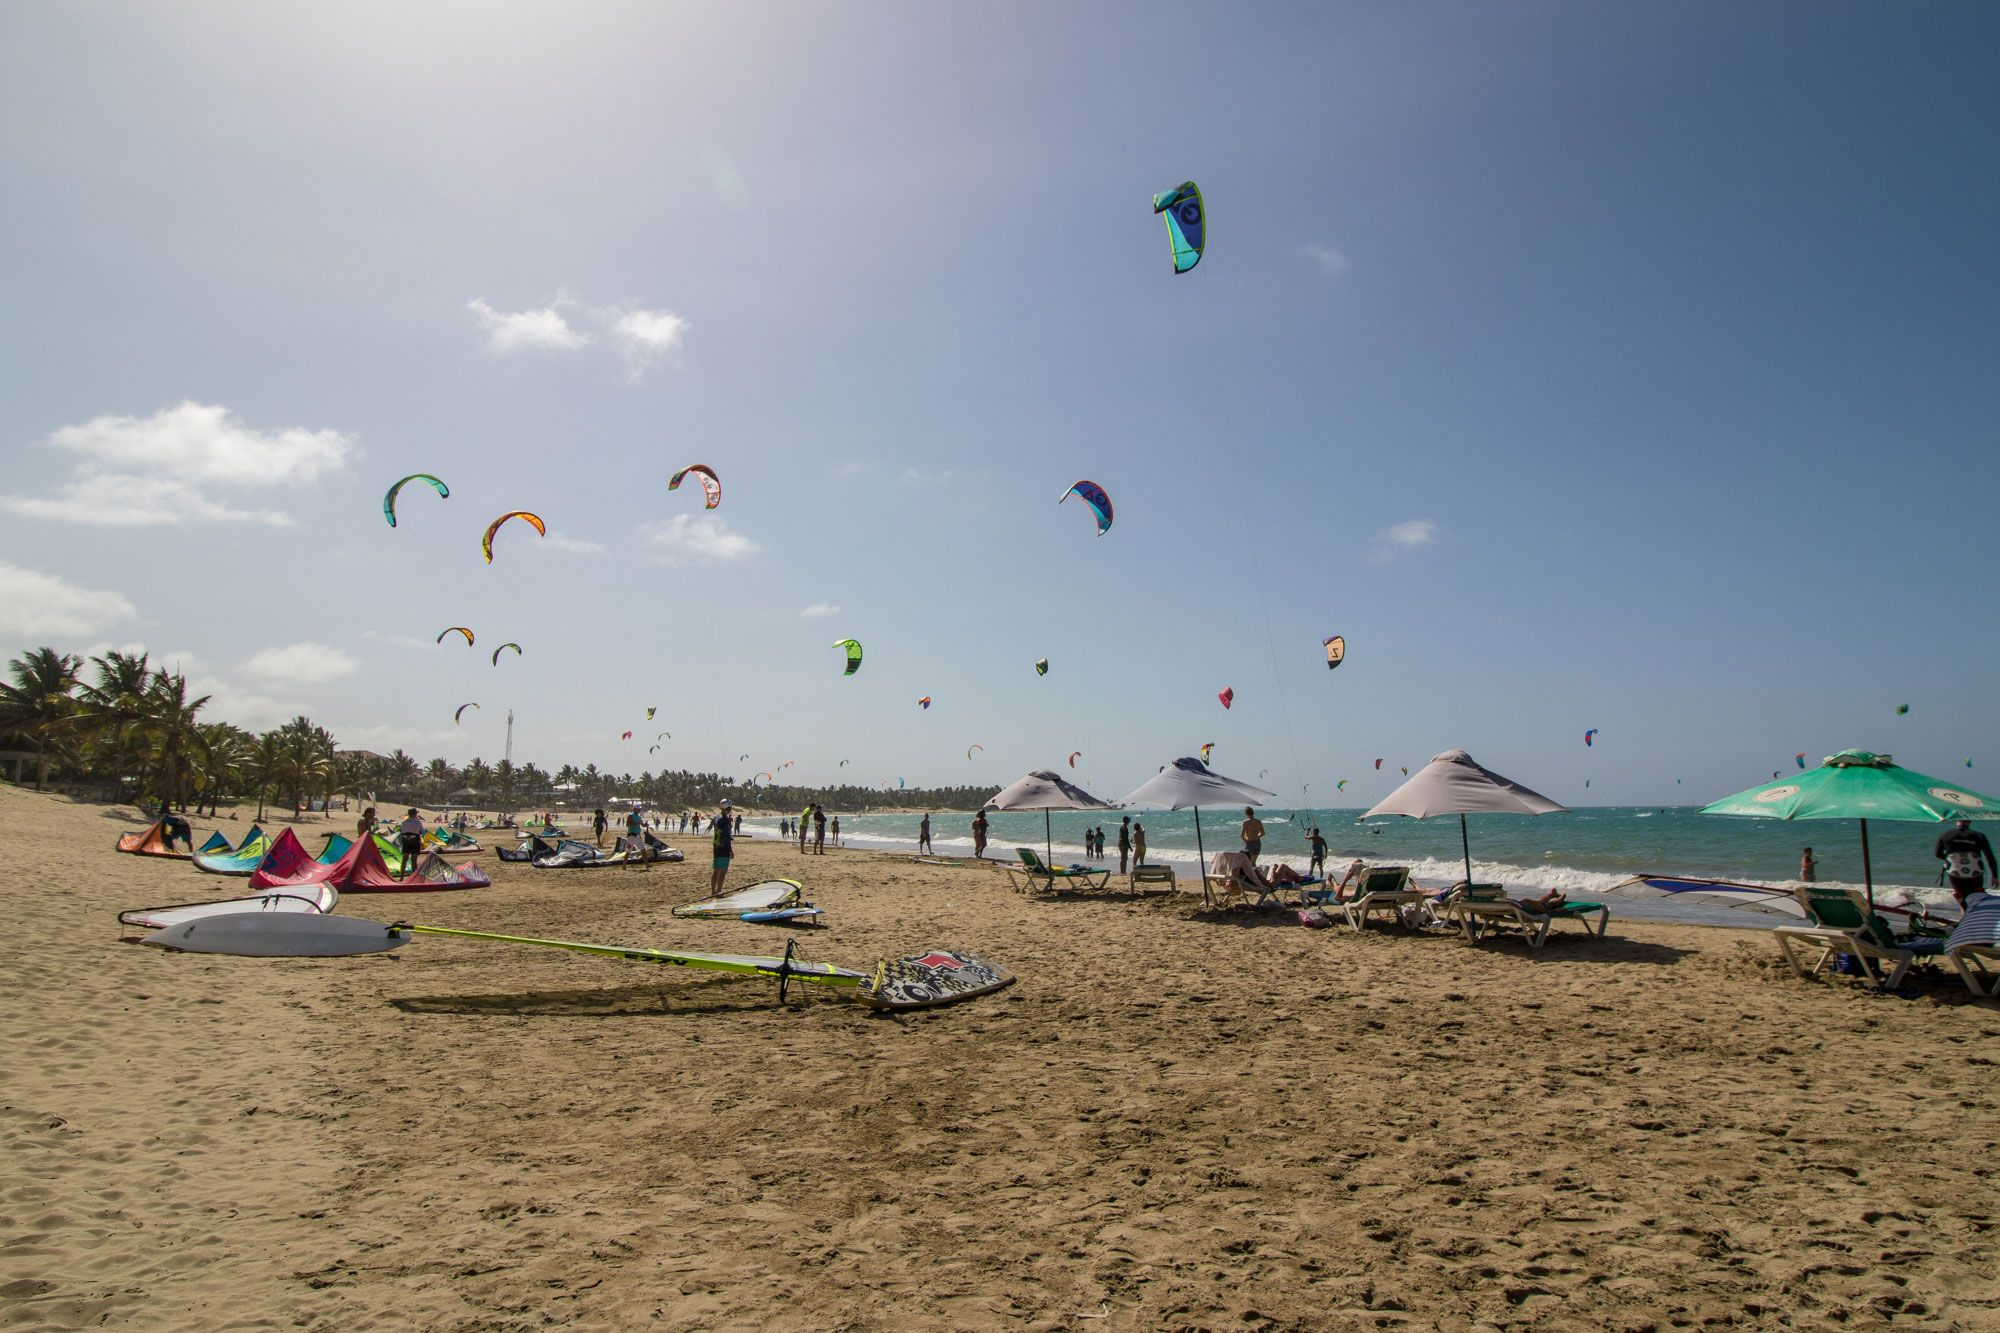 All About Kiteboarding in Cabarete, Dominican Republic